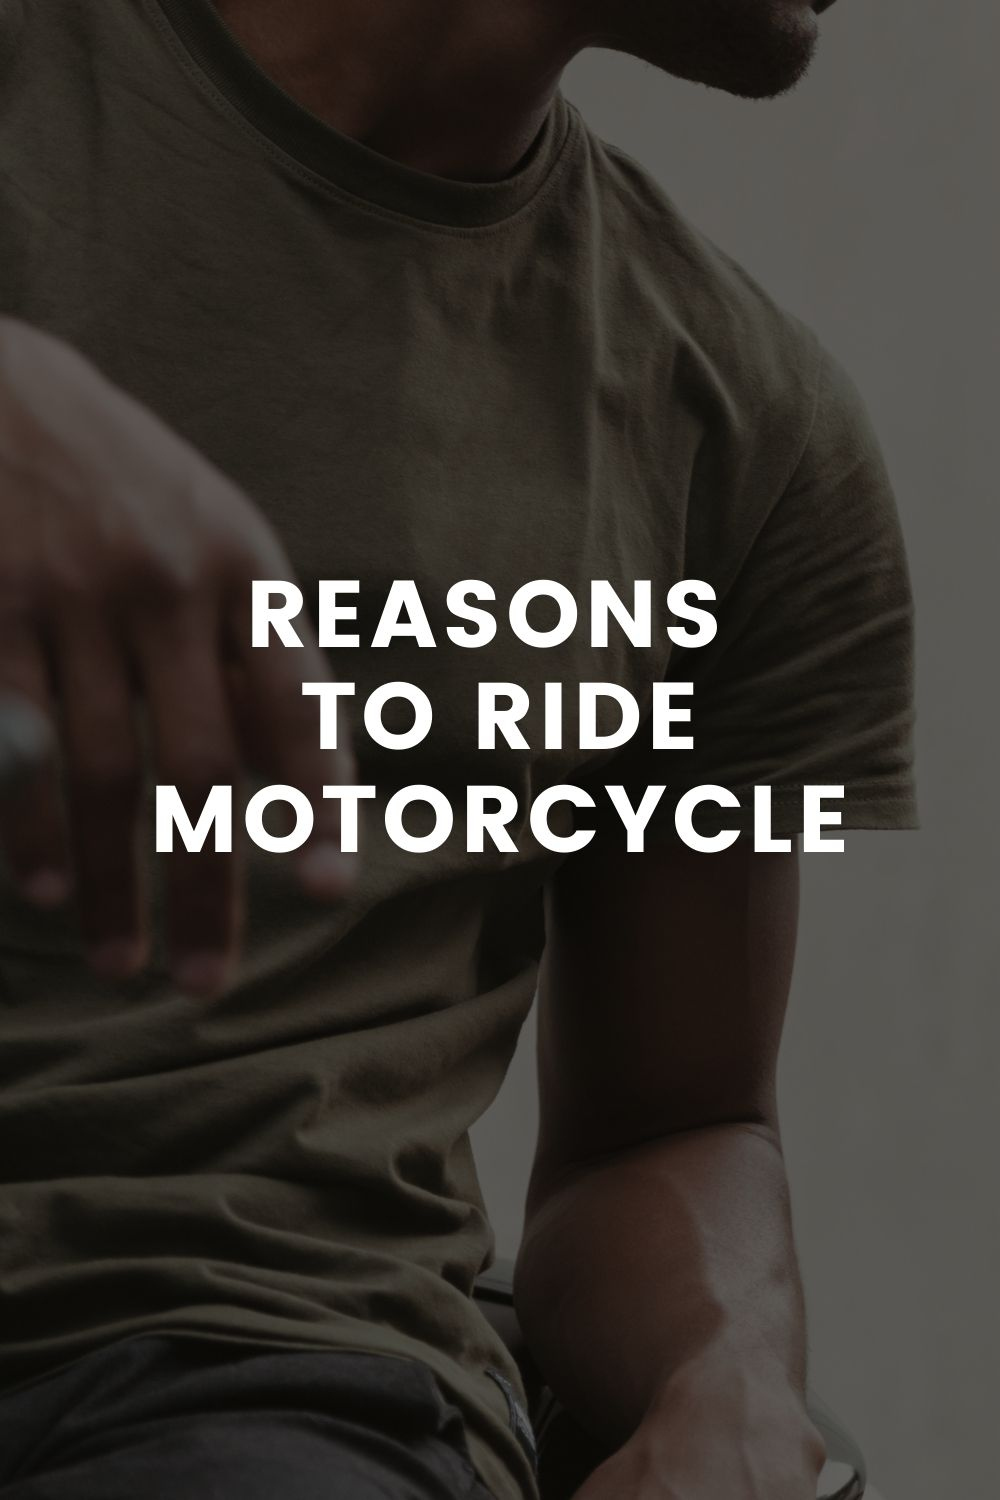 Reasons to Ride Motorcycle